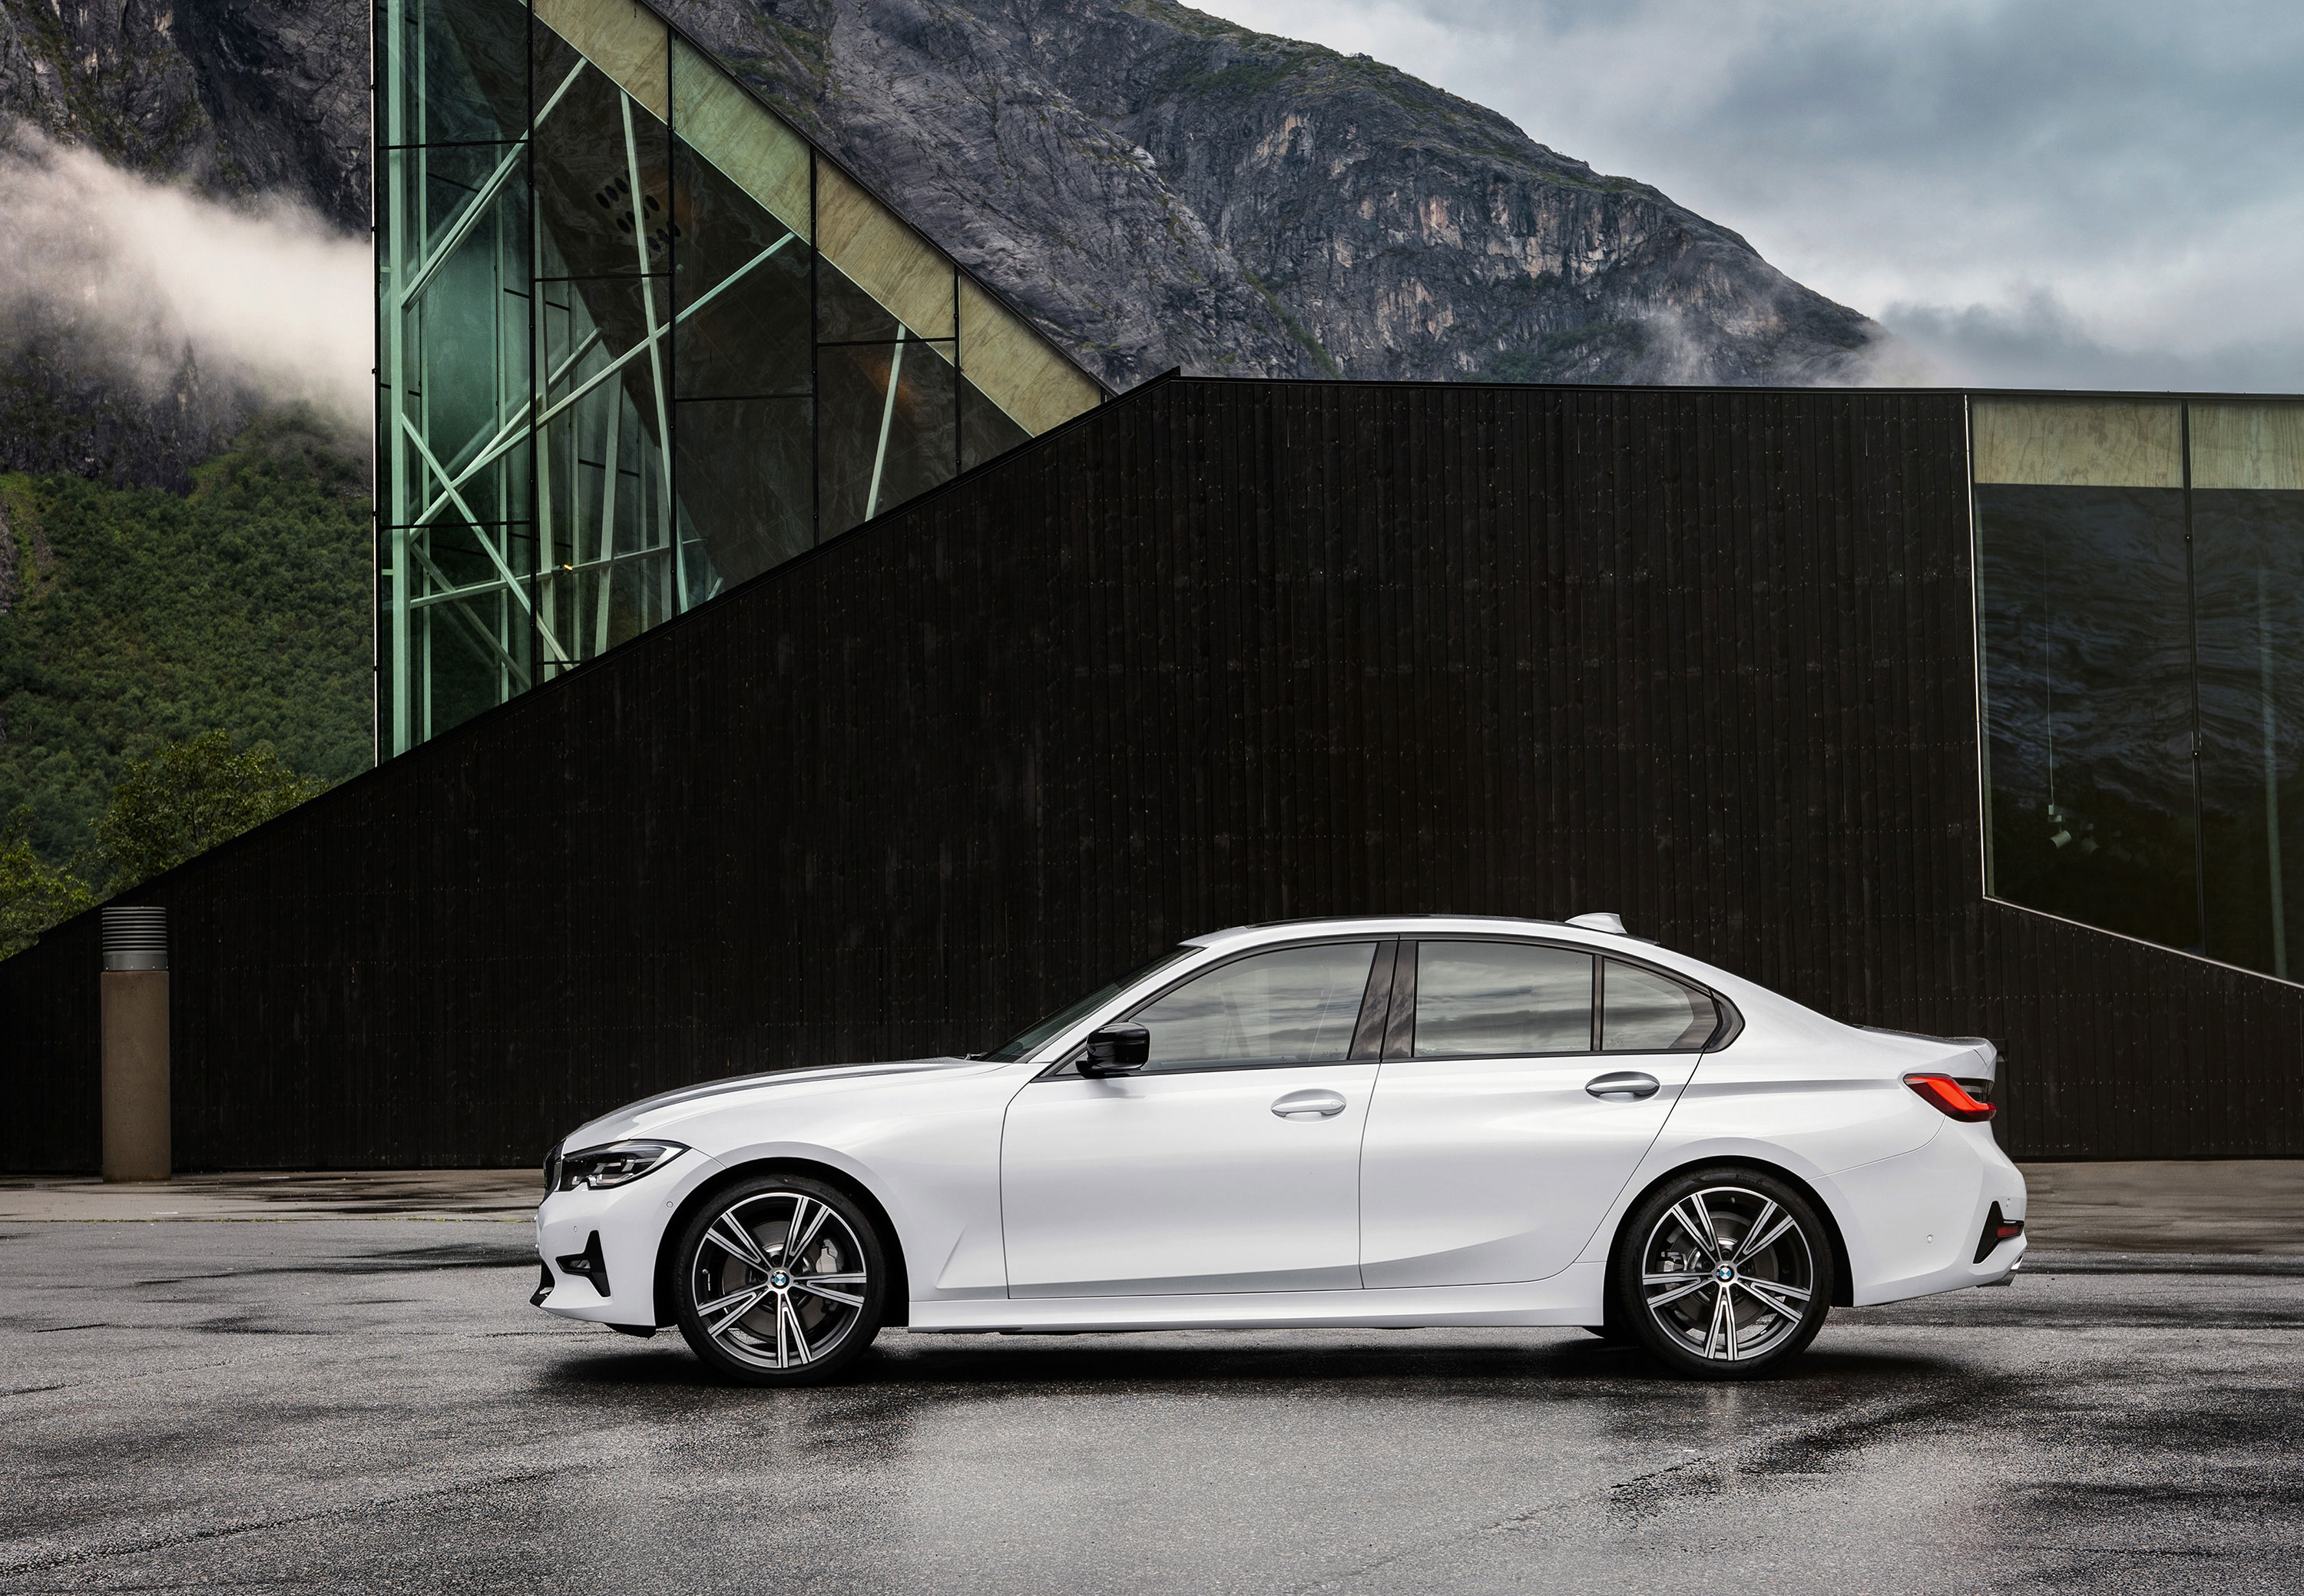 CARWIDE_BMW_Série 3 2019 - Lateral